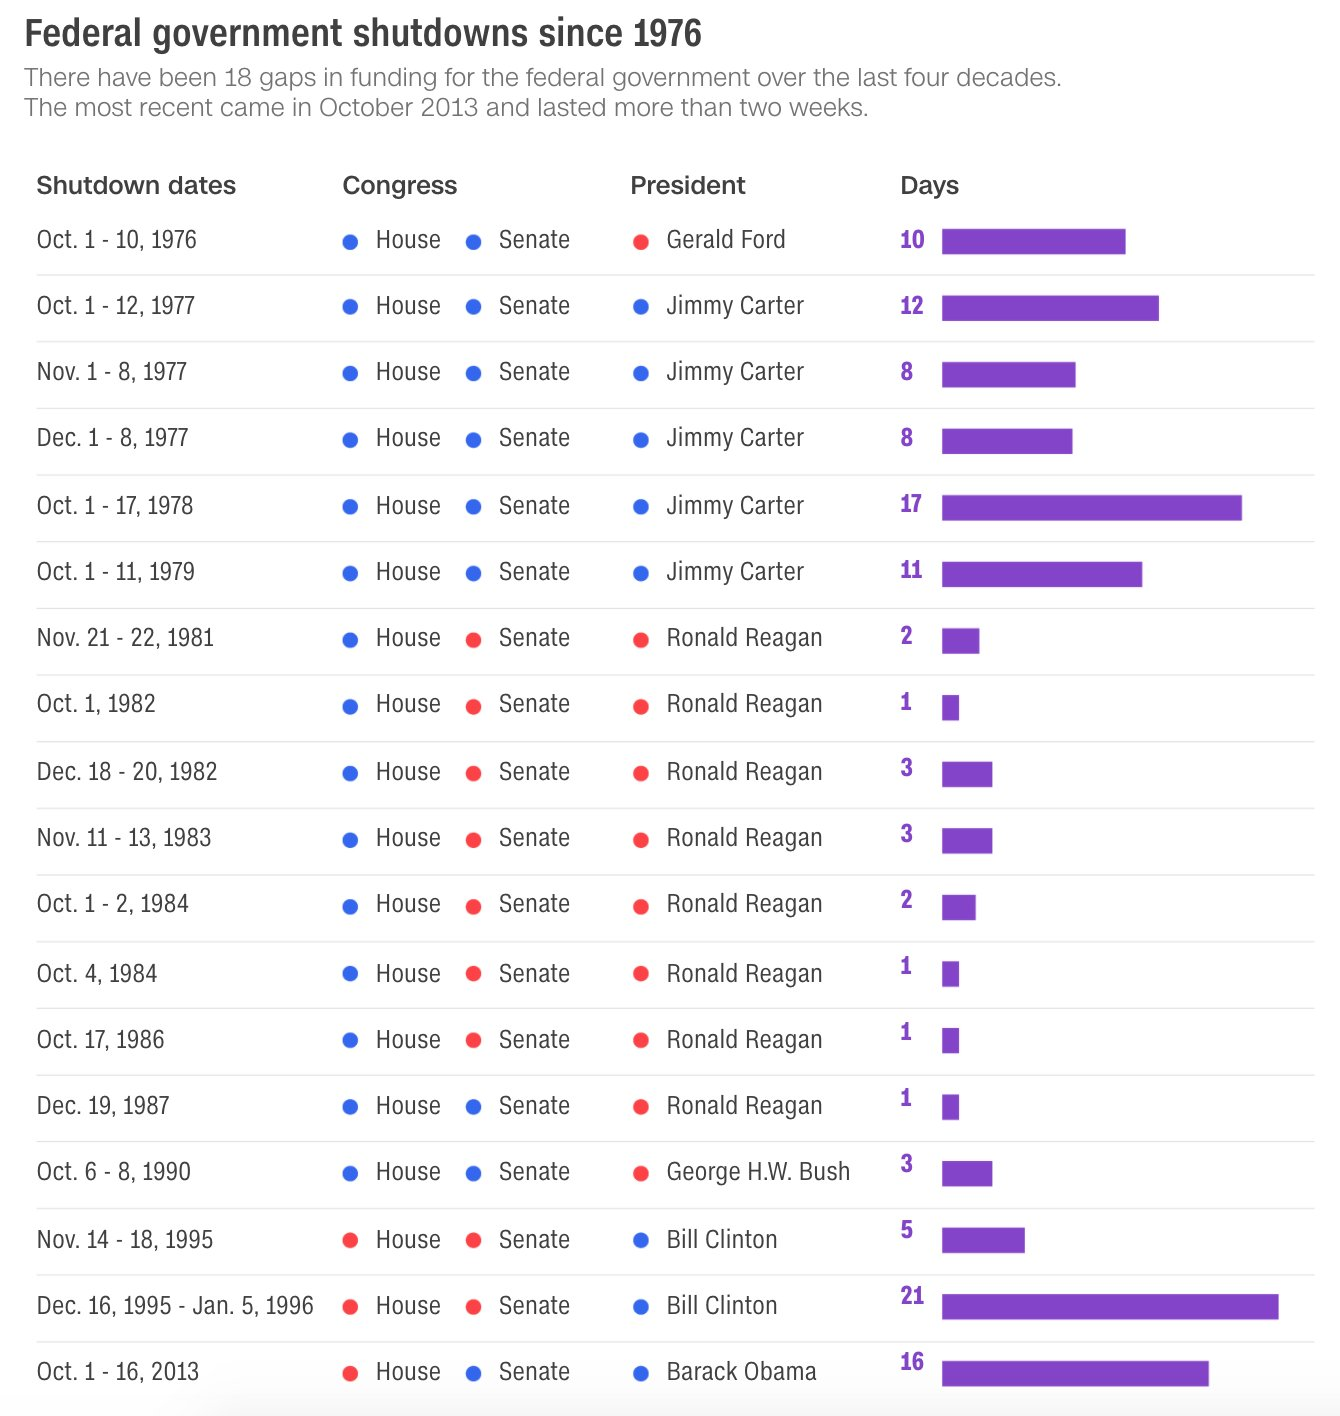 The history of US government shutdowns in 1 chart https://t.co/QVdHMULPdz https://t.co/KrrySGp68W